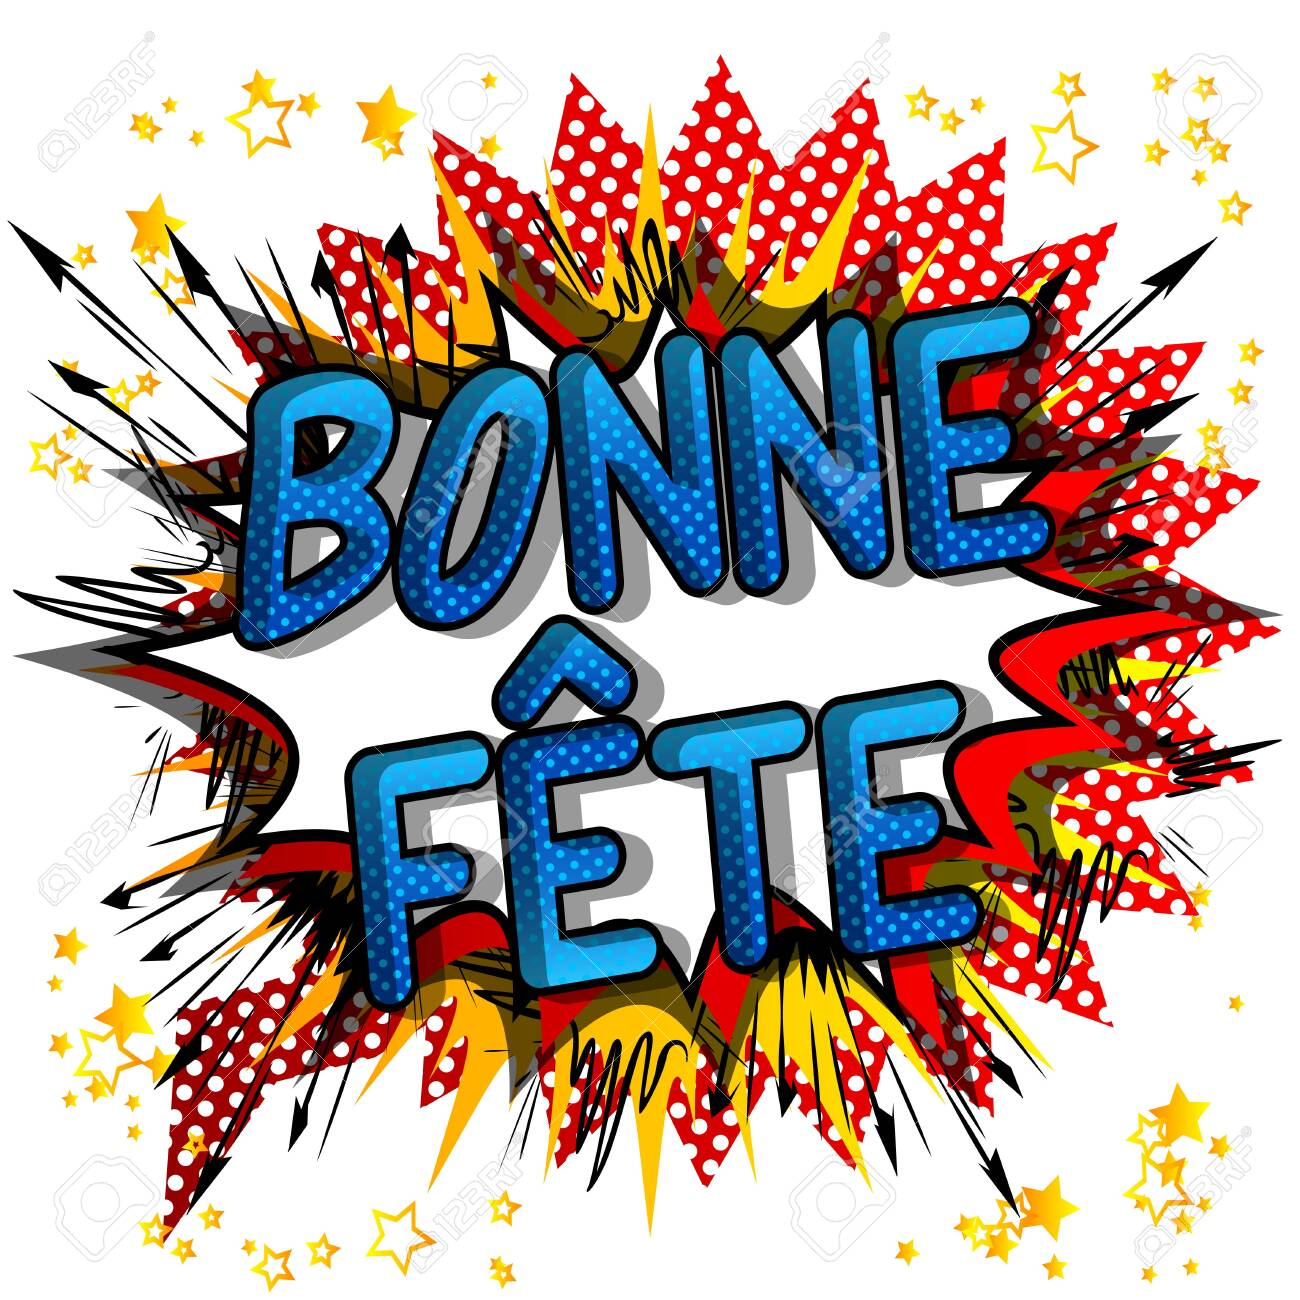 Bonne Fete (Have a good celebration in Franch and Happy Birthday in Canada) Vector comic book words. - 122904273